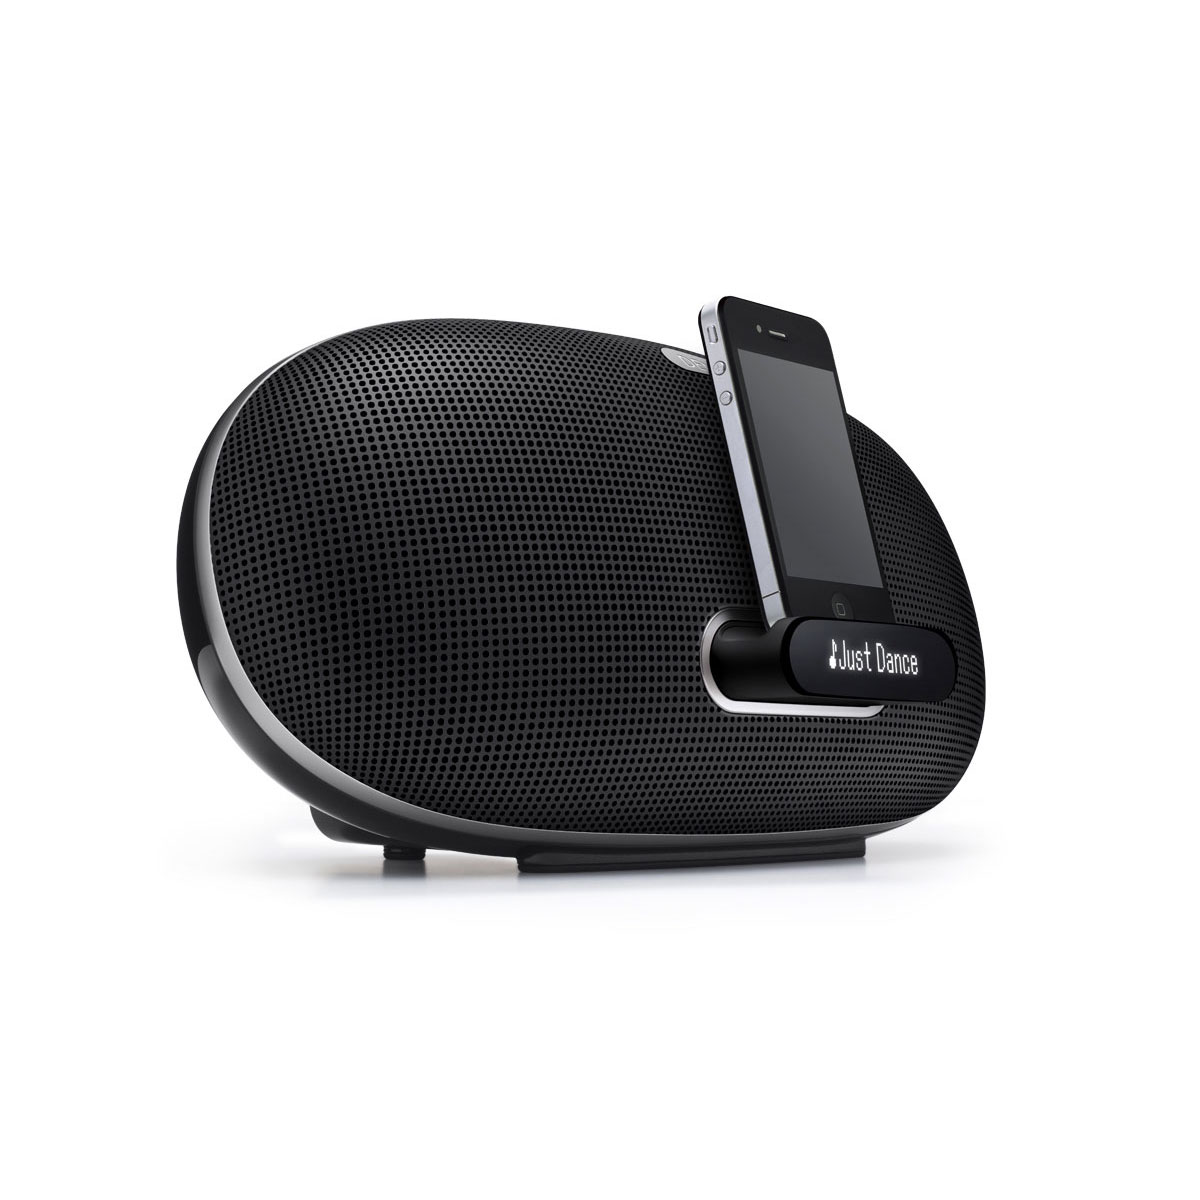 denon cocoon dsd300 noir dock enceinte bluetooth. Black Bedroom Furniture Sets. Home Design Ideas